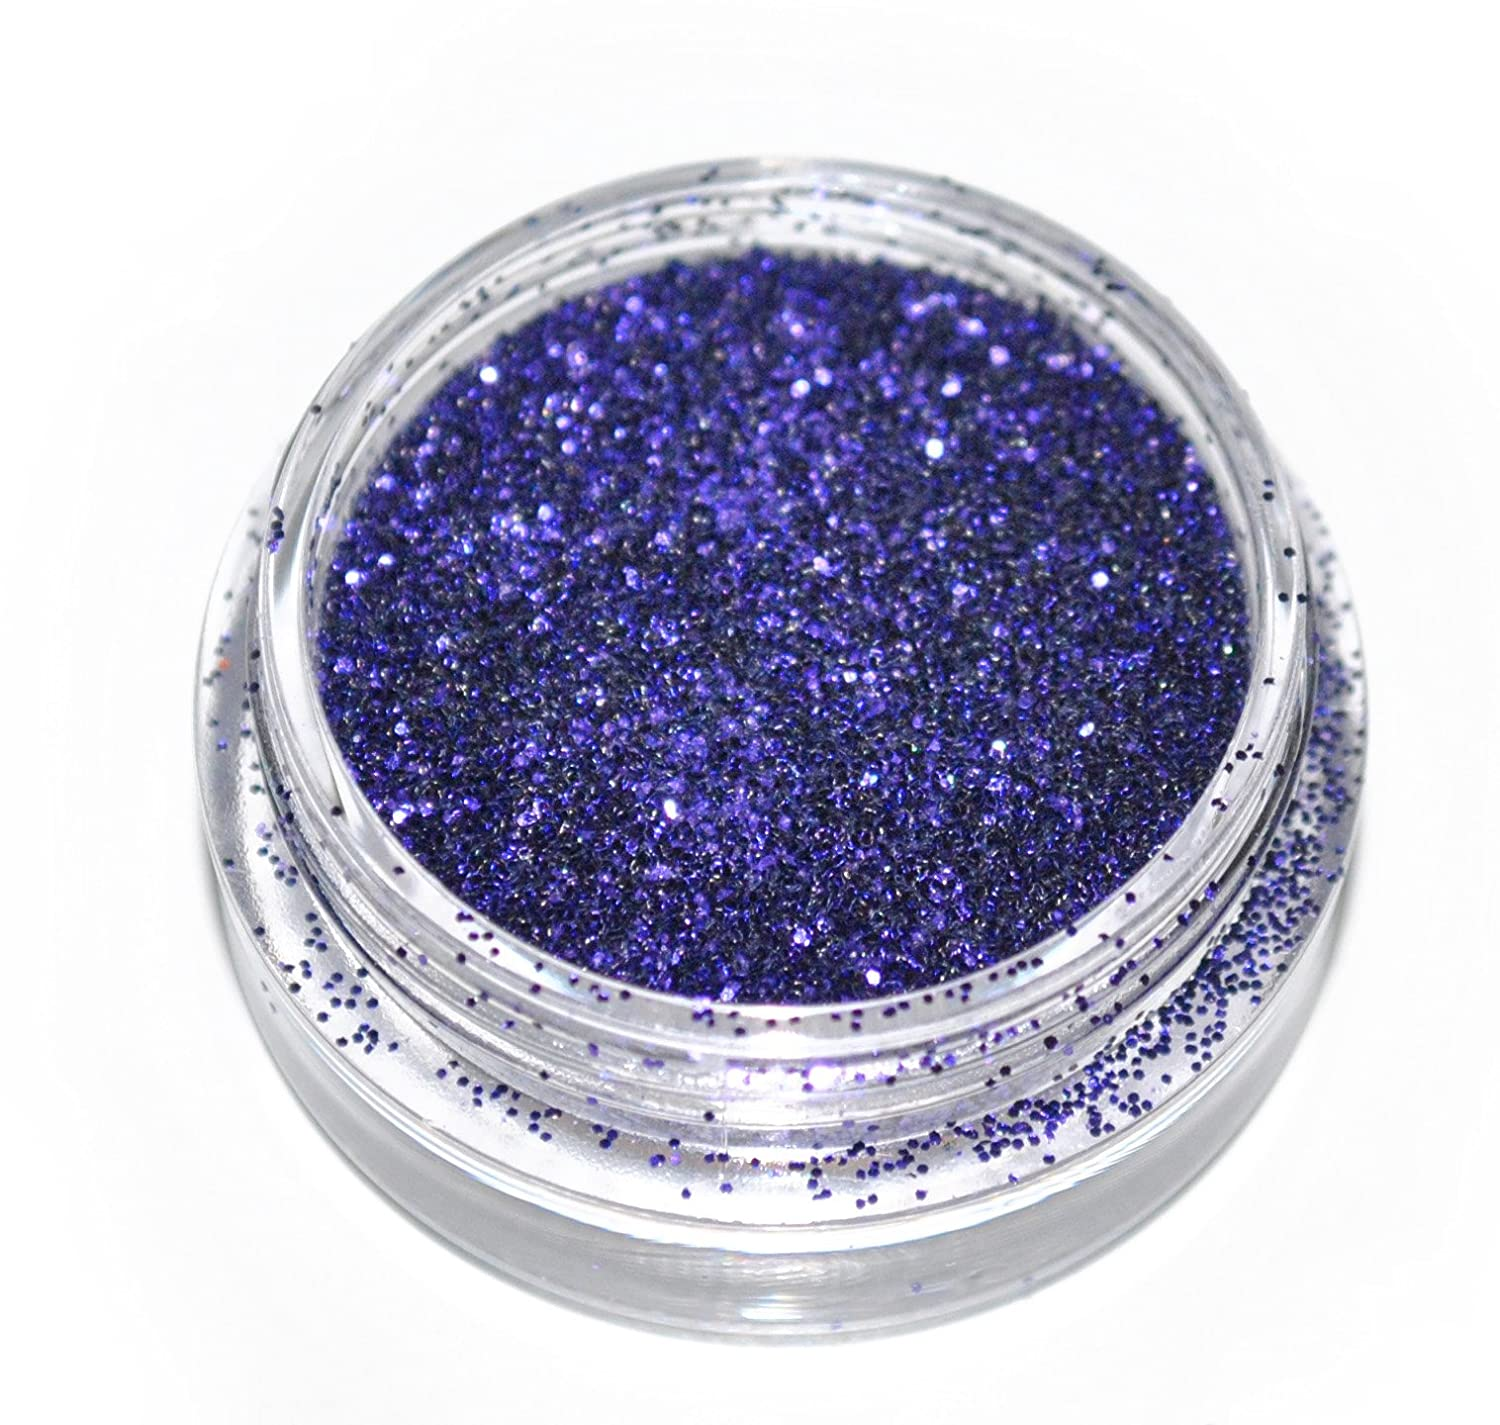 Dark Purple Eye Shadow Loose Glitter Dust Body Face Nail Art Party Shimmer Make-Up Kiara H&B B00GI8CQH8